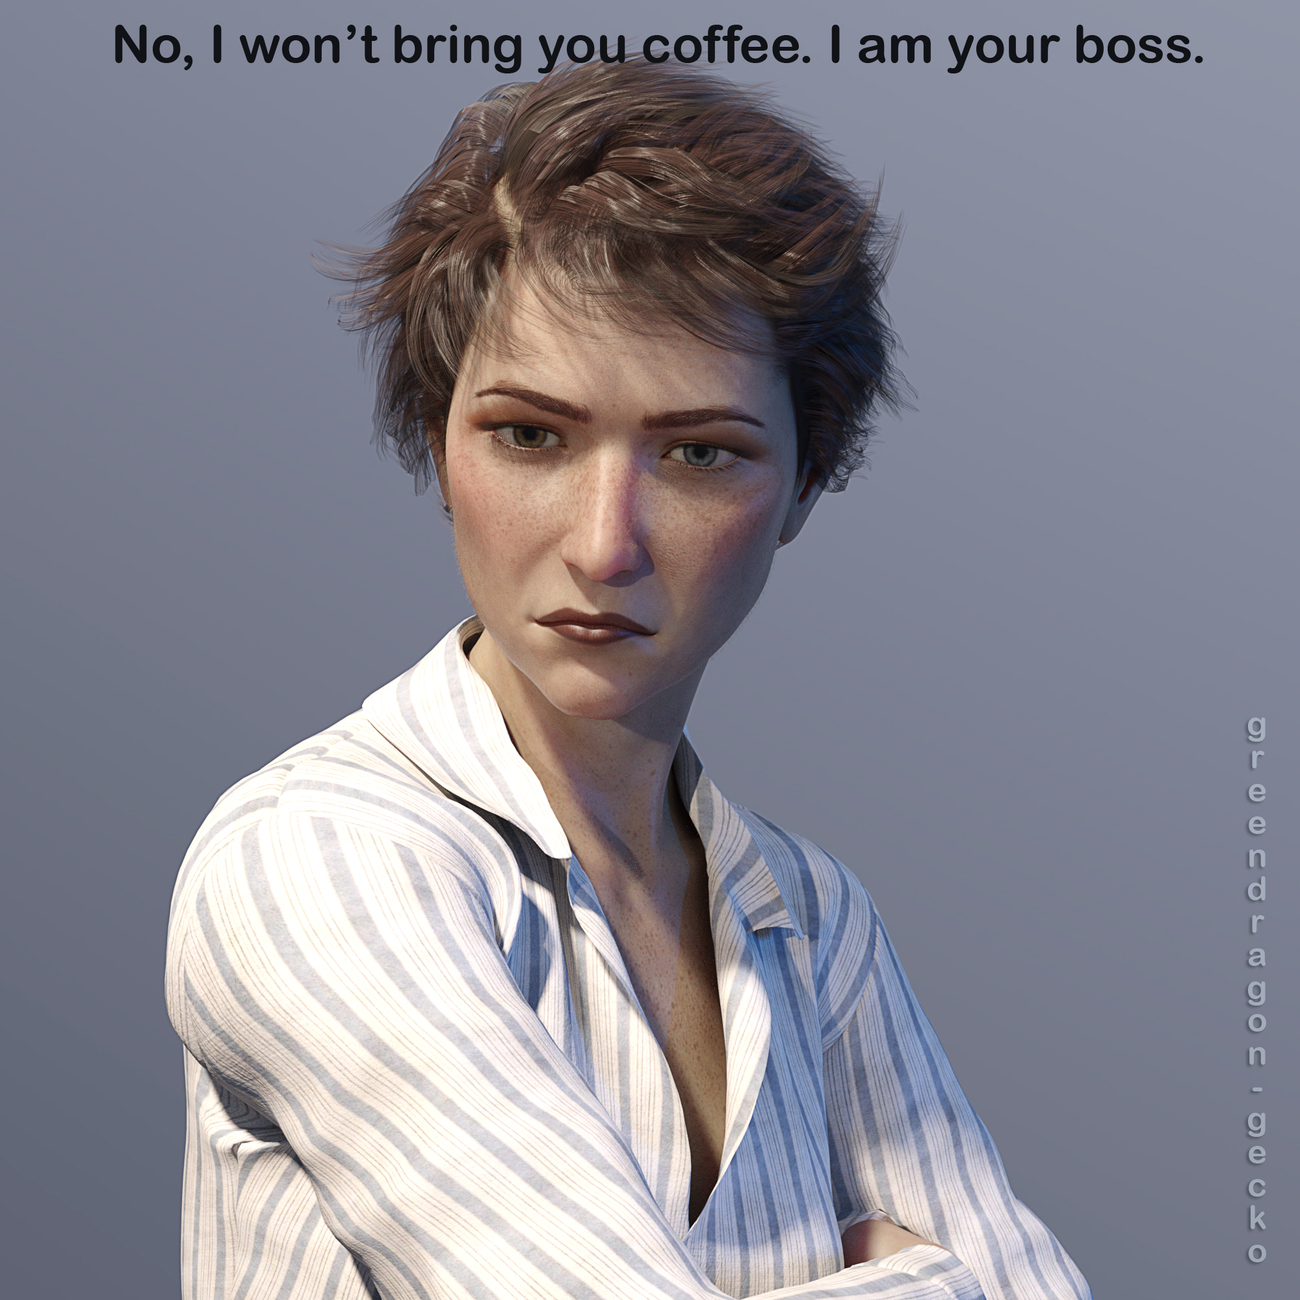 No I won't bring you coffee. I am your boss. by Salerina